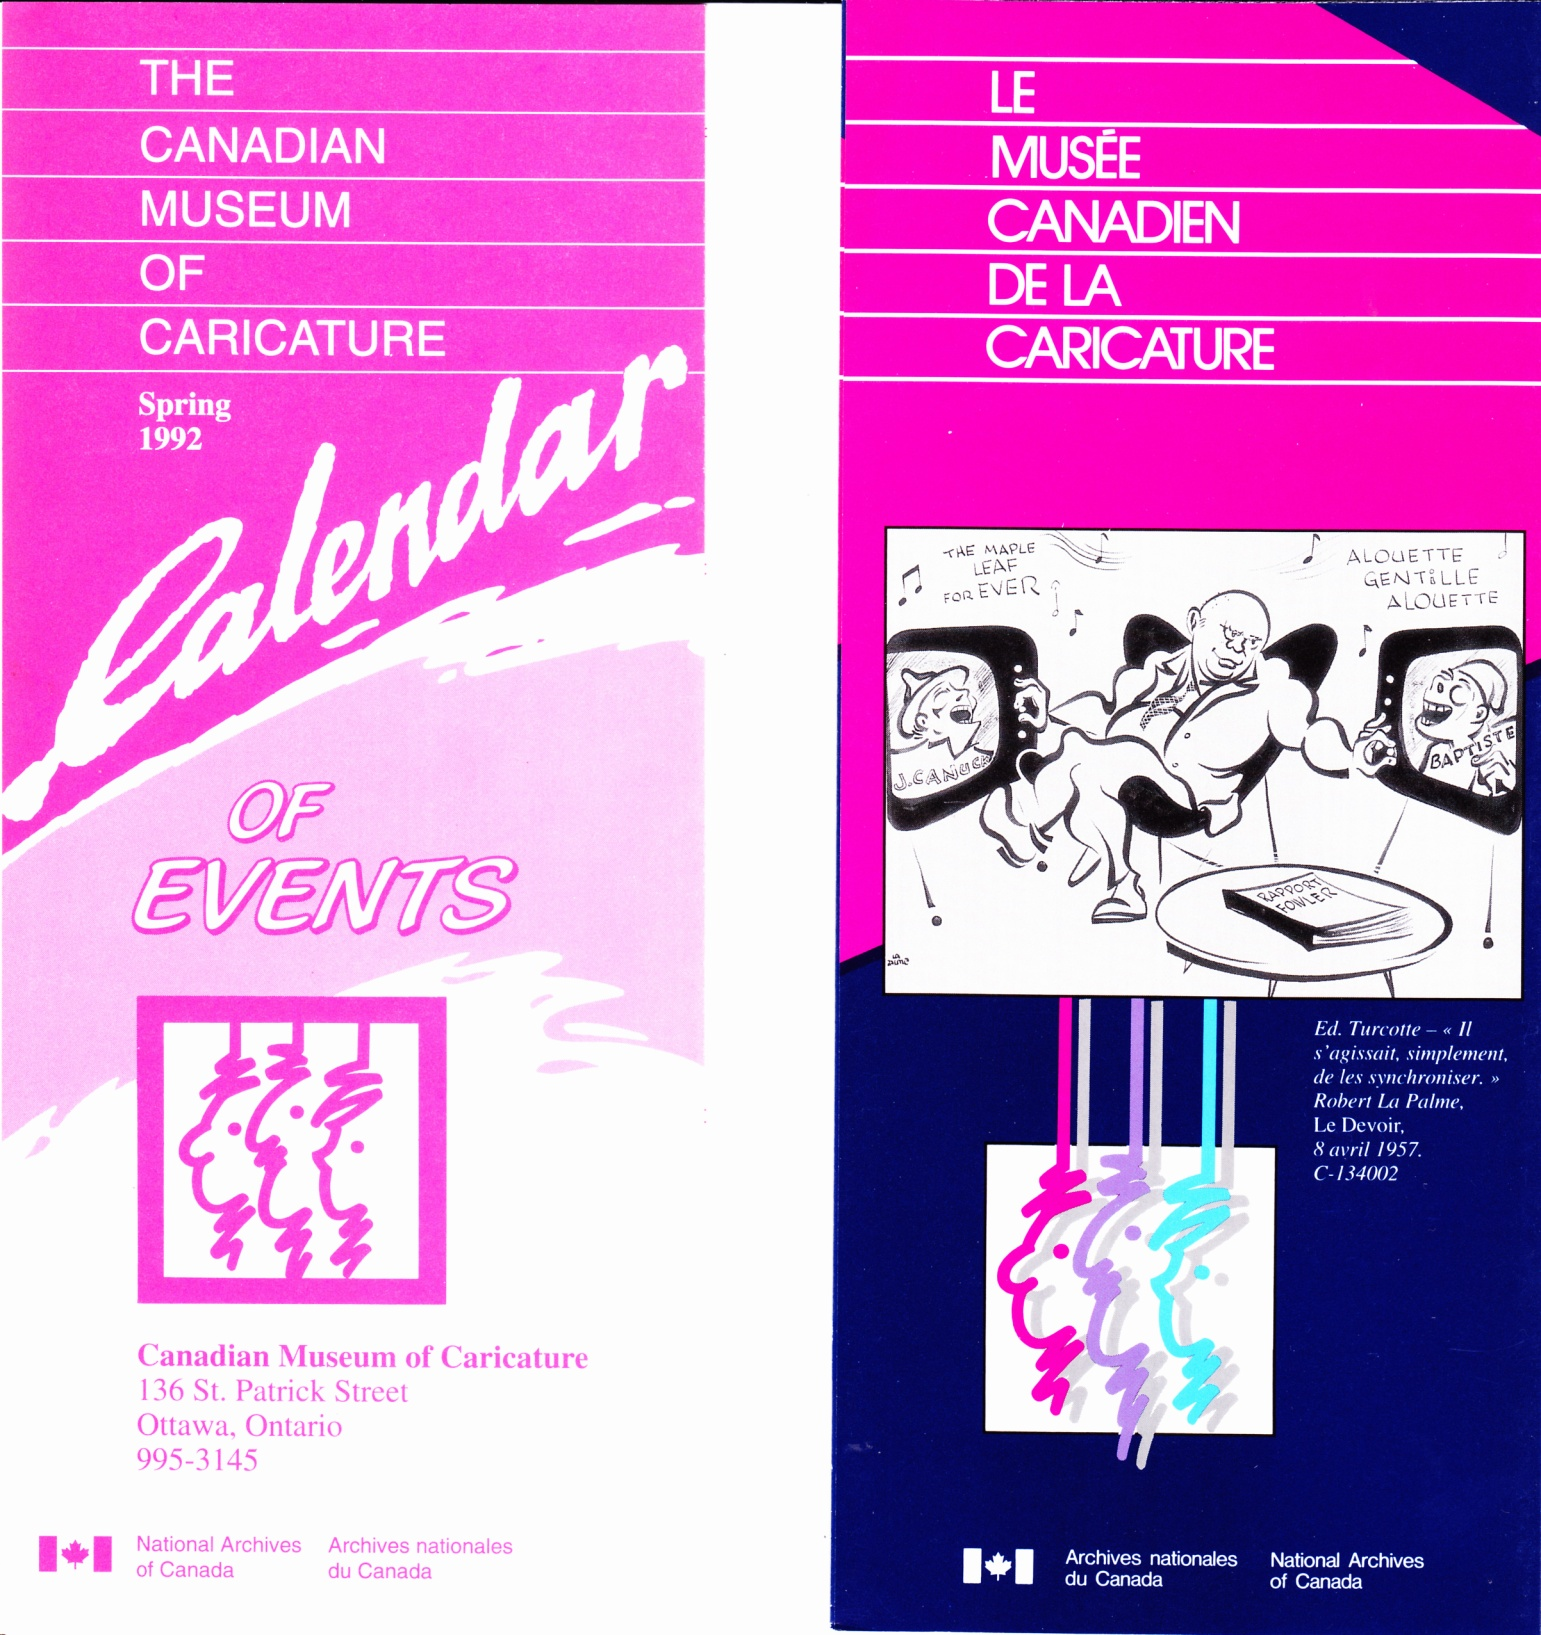 C:\Users\Robert\Documents\CARTOONING ILLUSTRATION ANIMATION\IMAGE COVER PERIODICAL\CANADIAN MUSEUM OF CARICATURE_0007.jpg